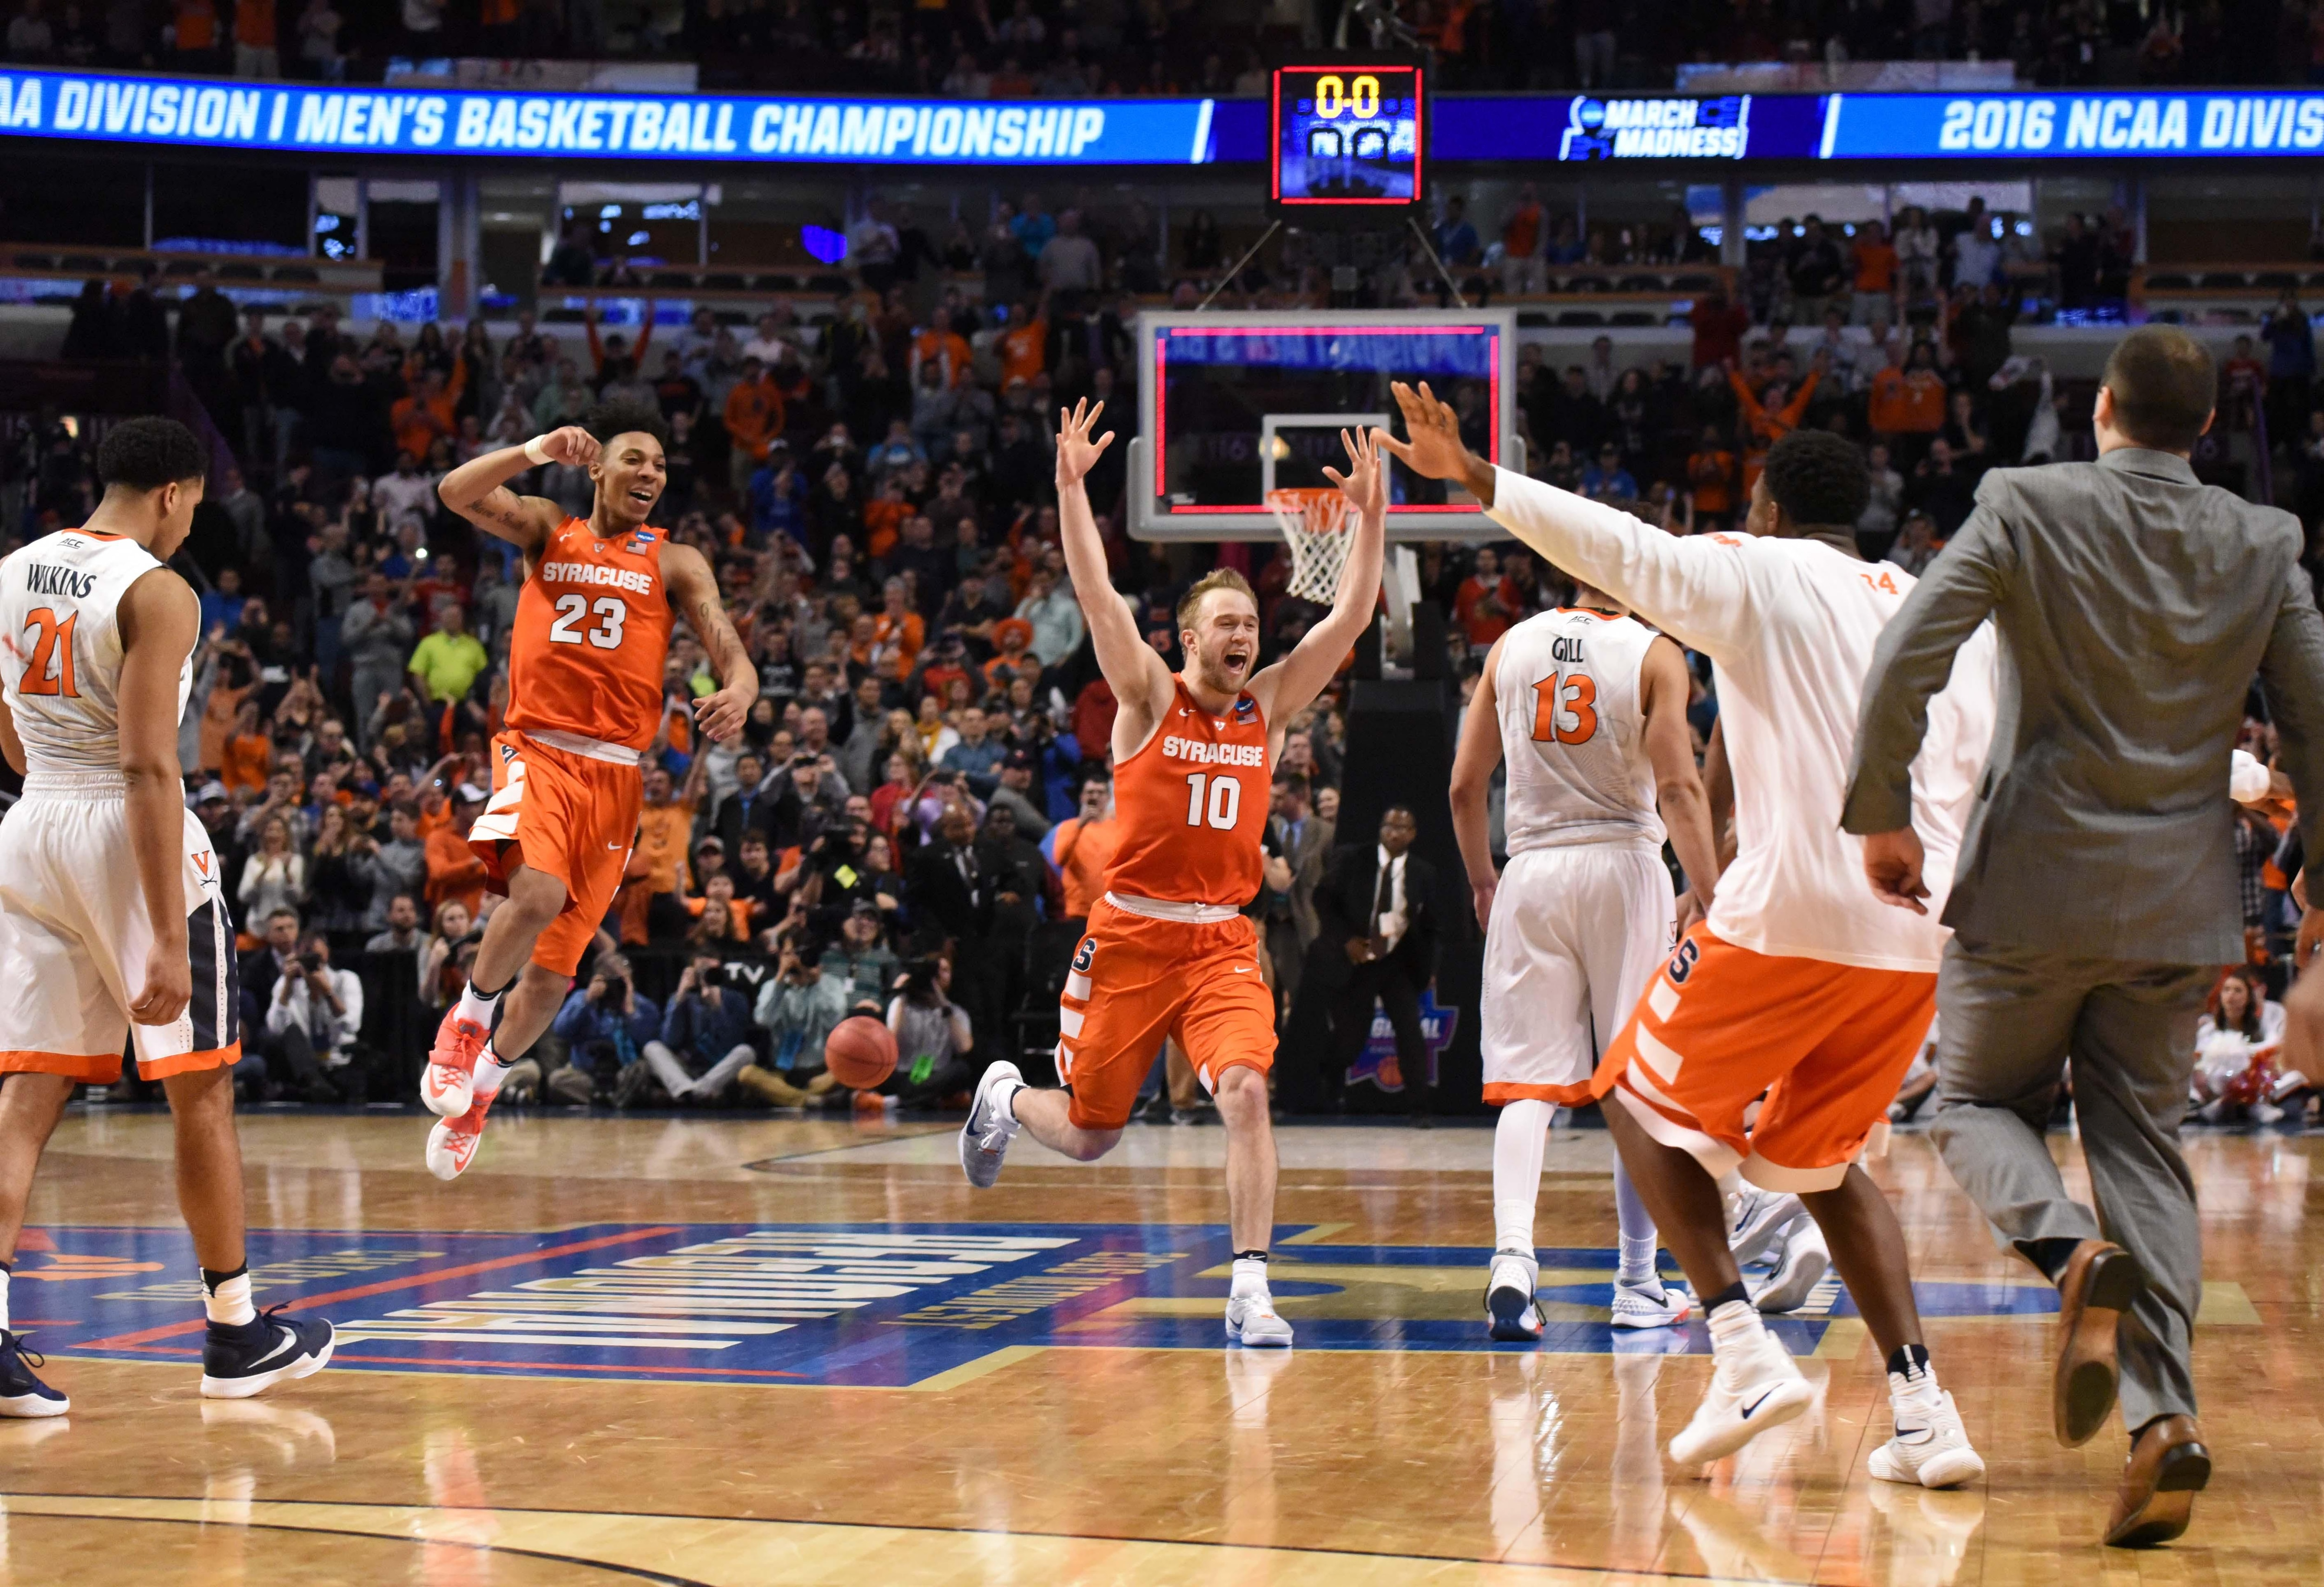 Syracuse is the only 10 seed to reach the Final Four.